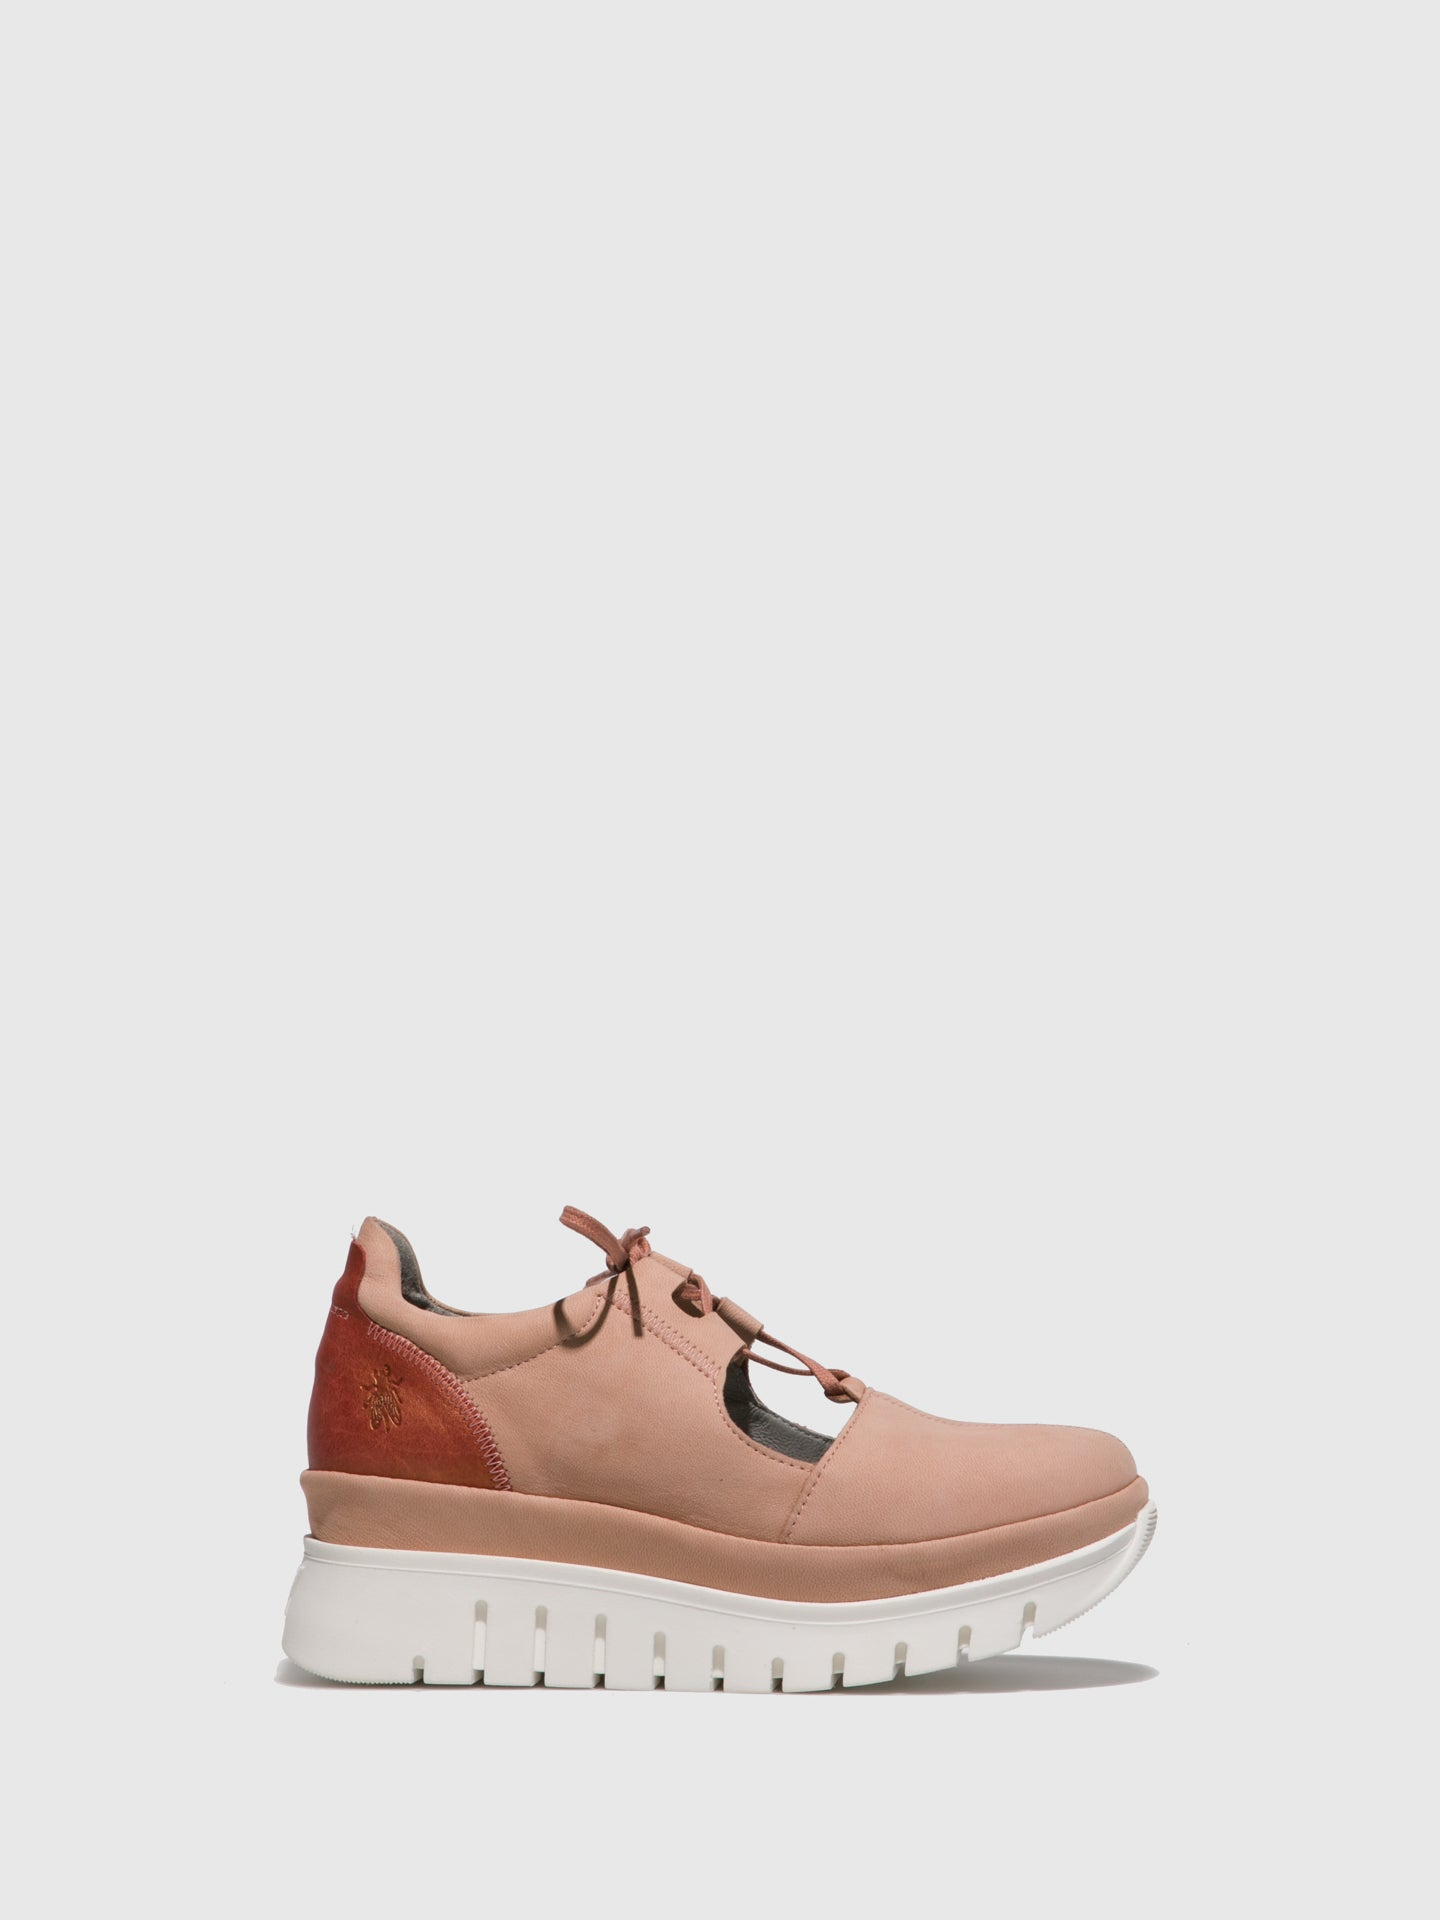 Fly London Pink Lace-up Shoes